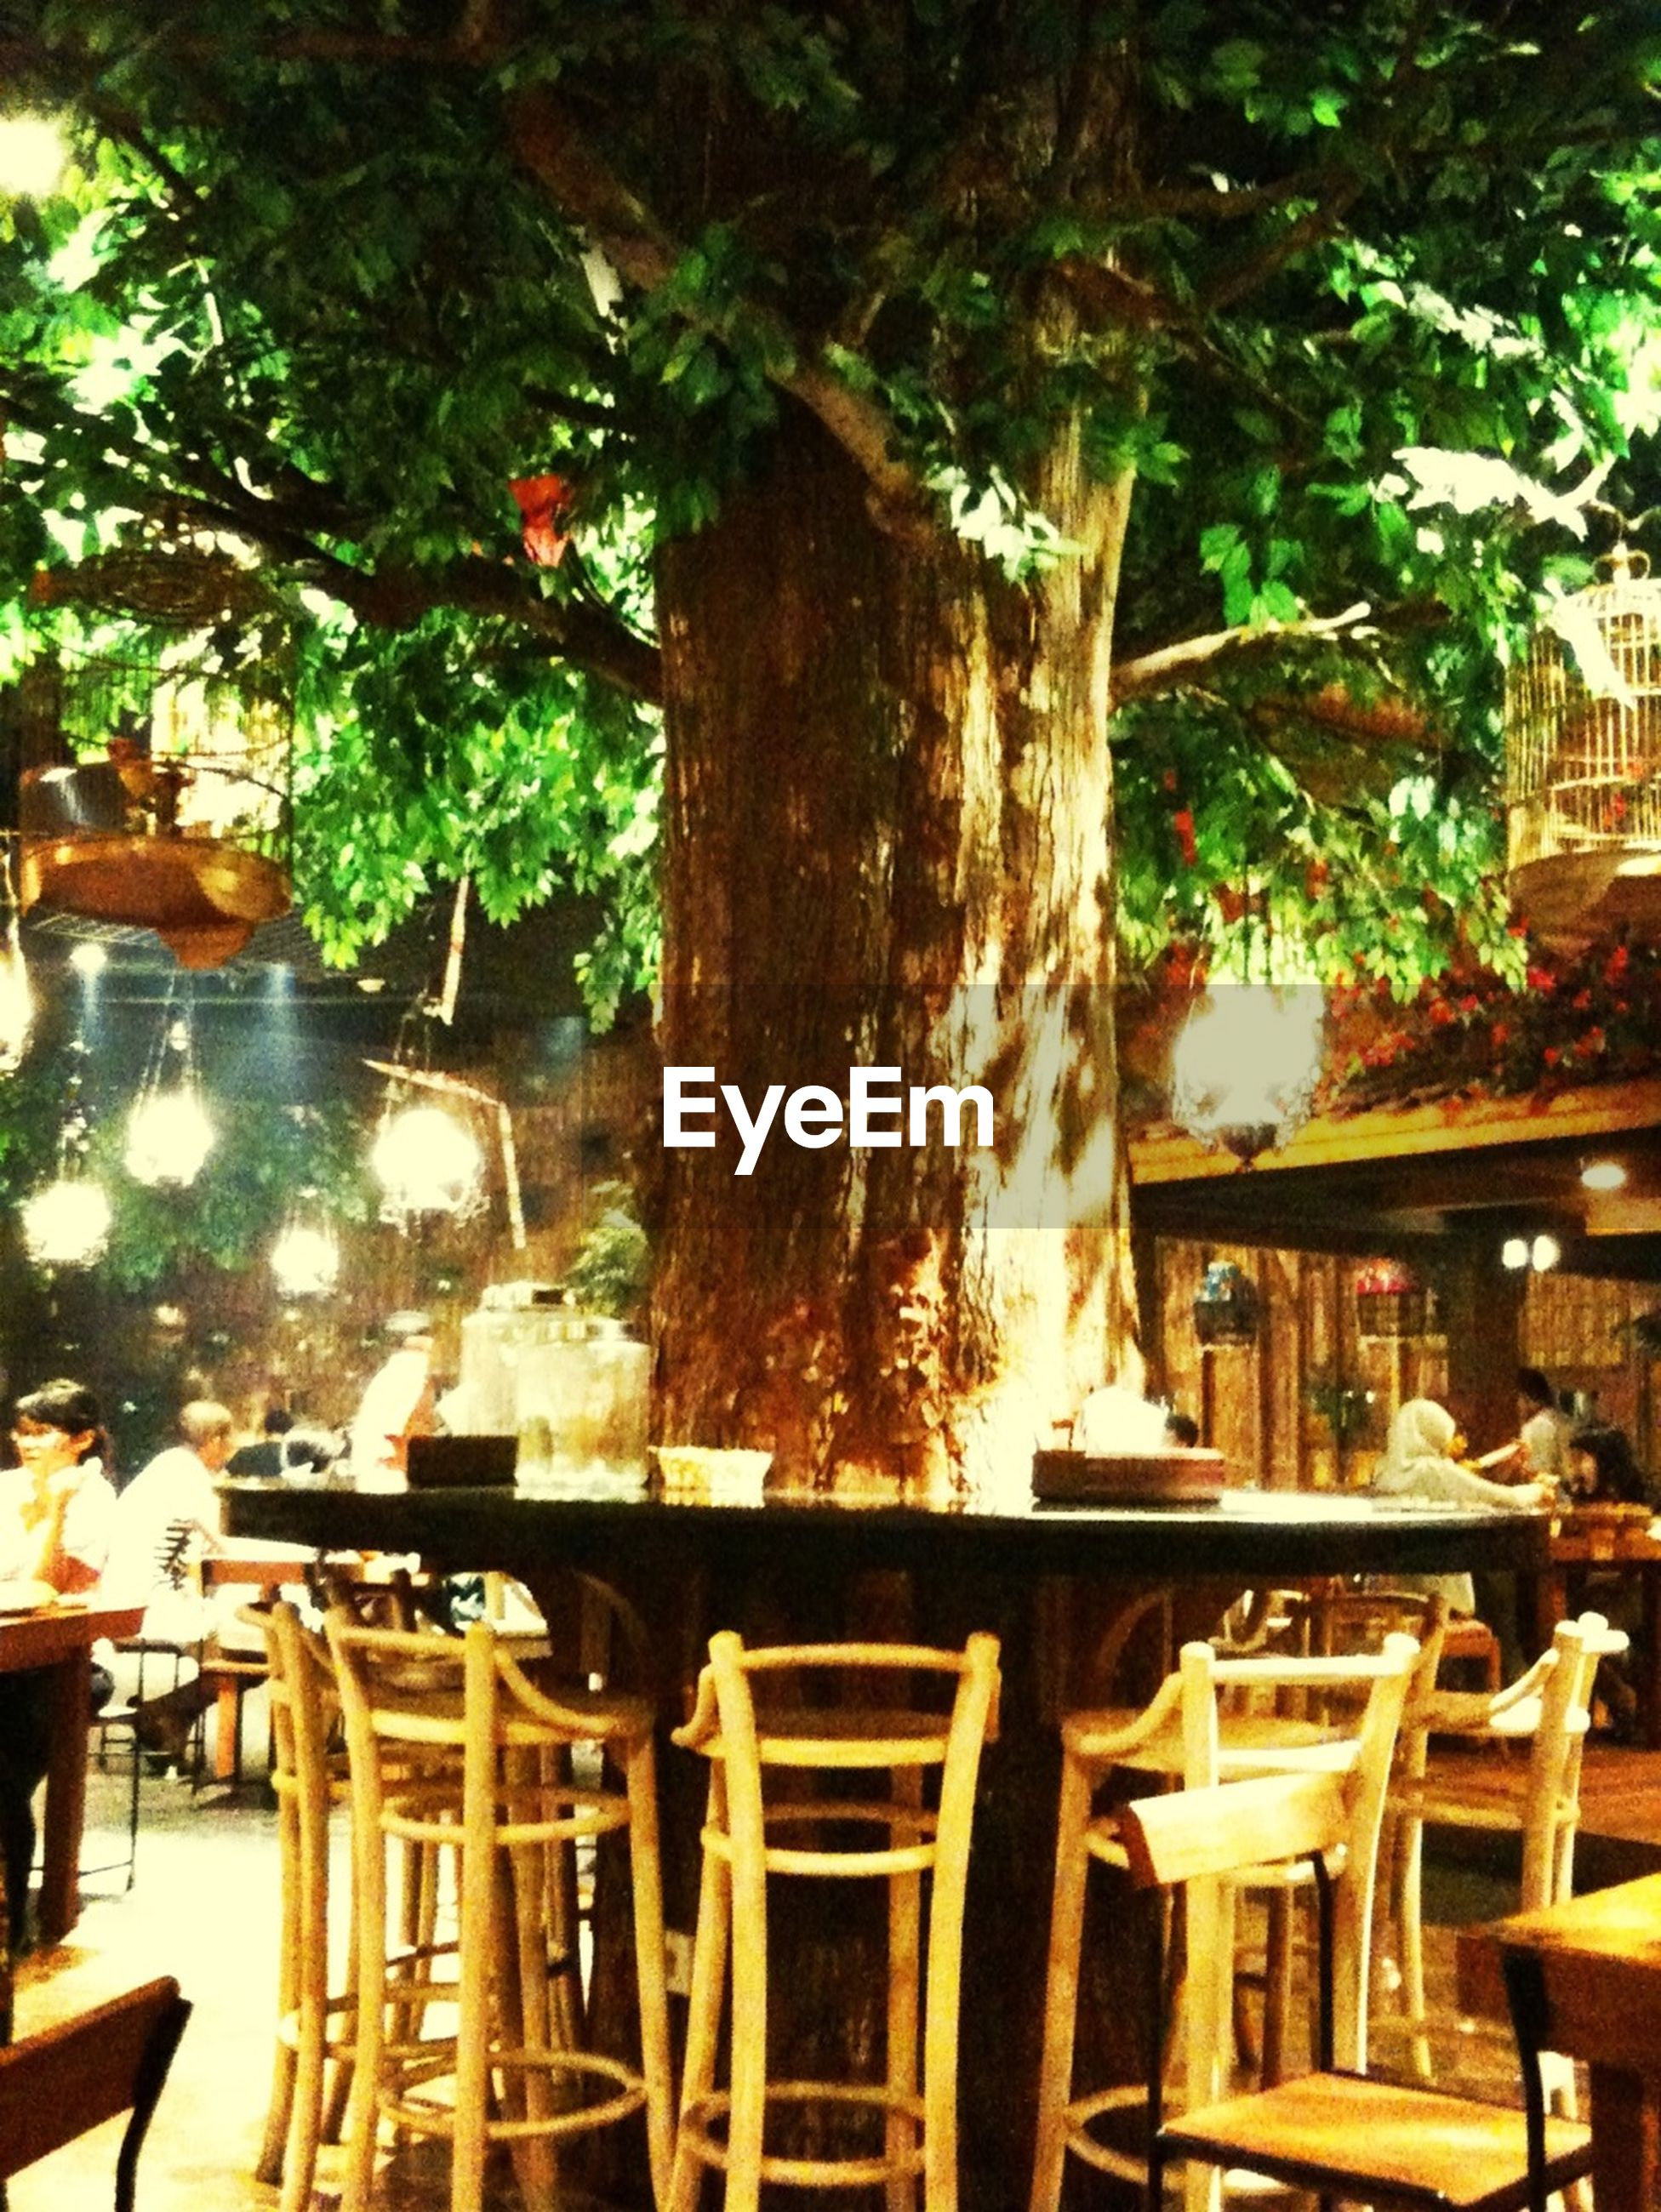 table, chair, tree, restaurant, absence, indoors, empty, place setting, arrangement, sunlight, drink, sidewalk cafe, dining table, seat, food and drink, day, cafe, arranged, potted plant, in a row